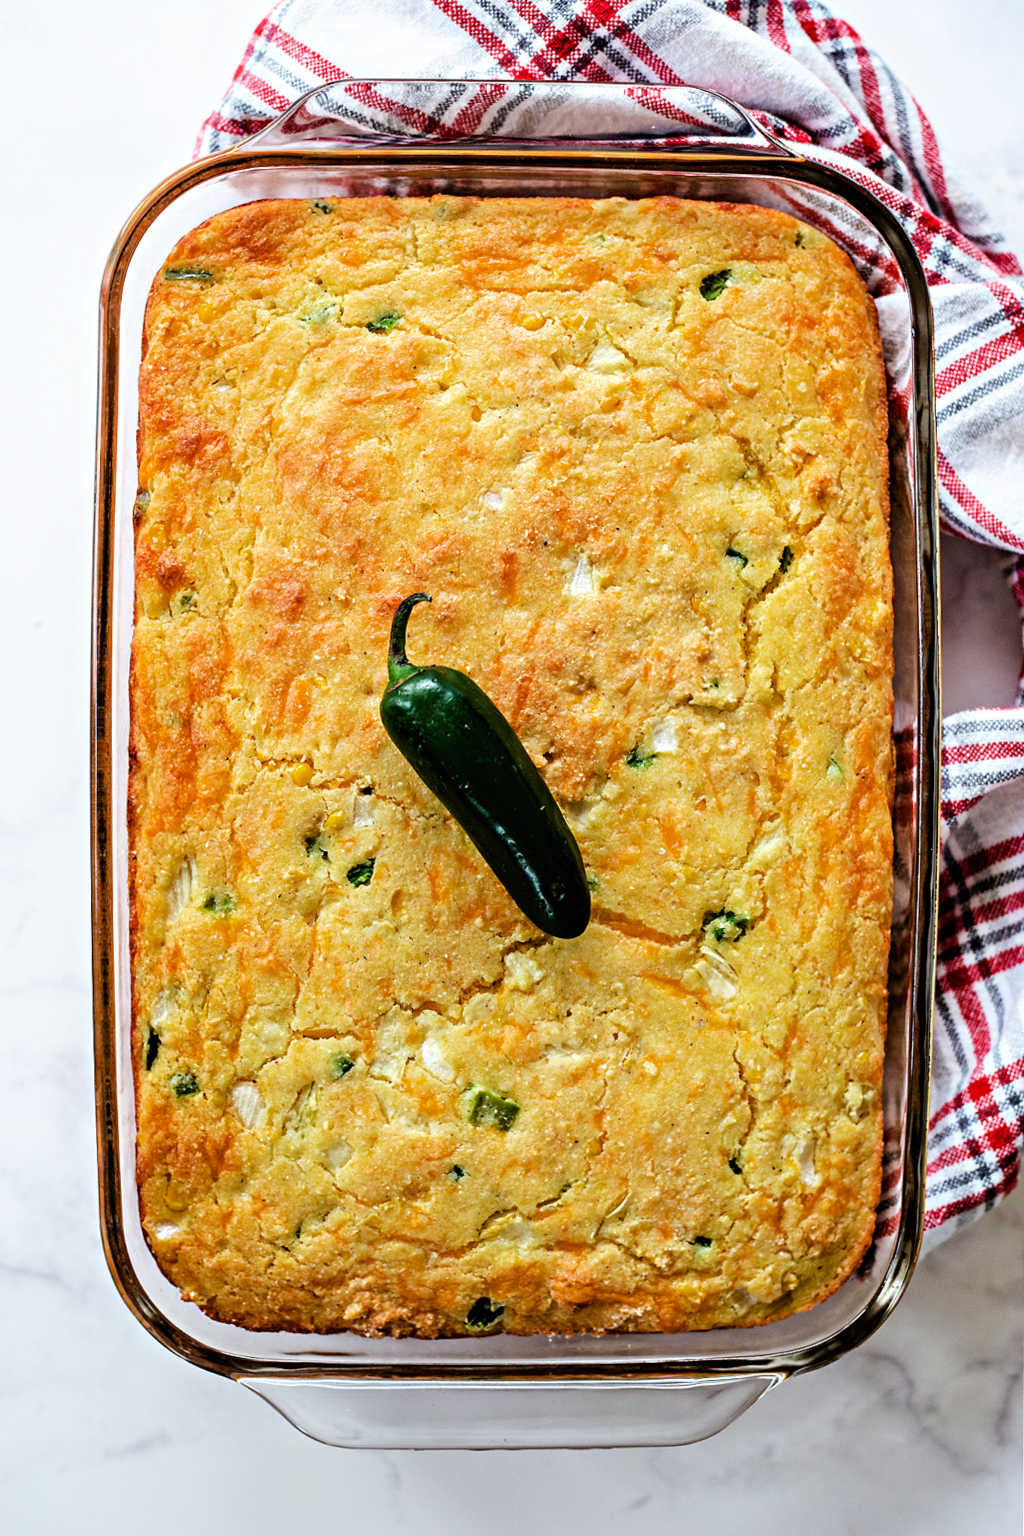 a pan of baked Mexican cornbread on a table